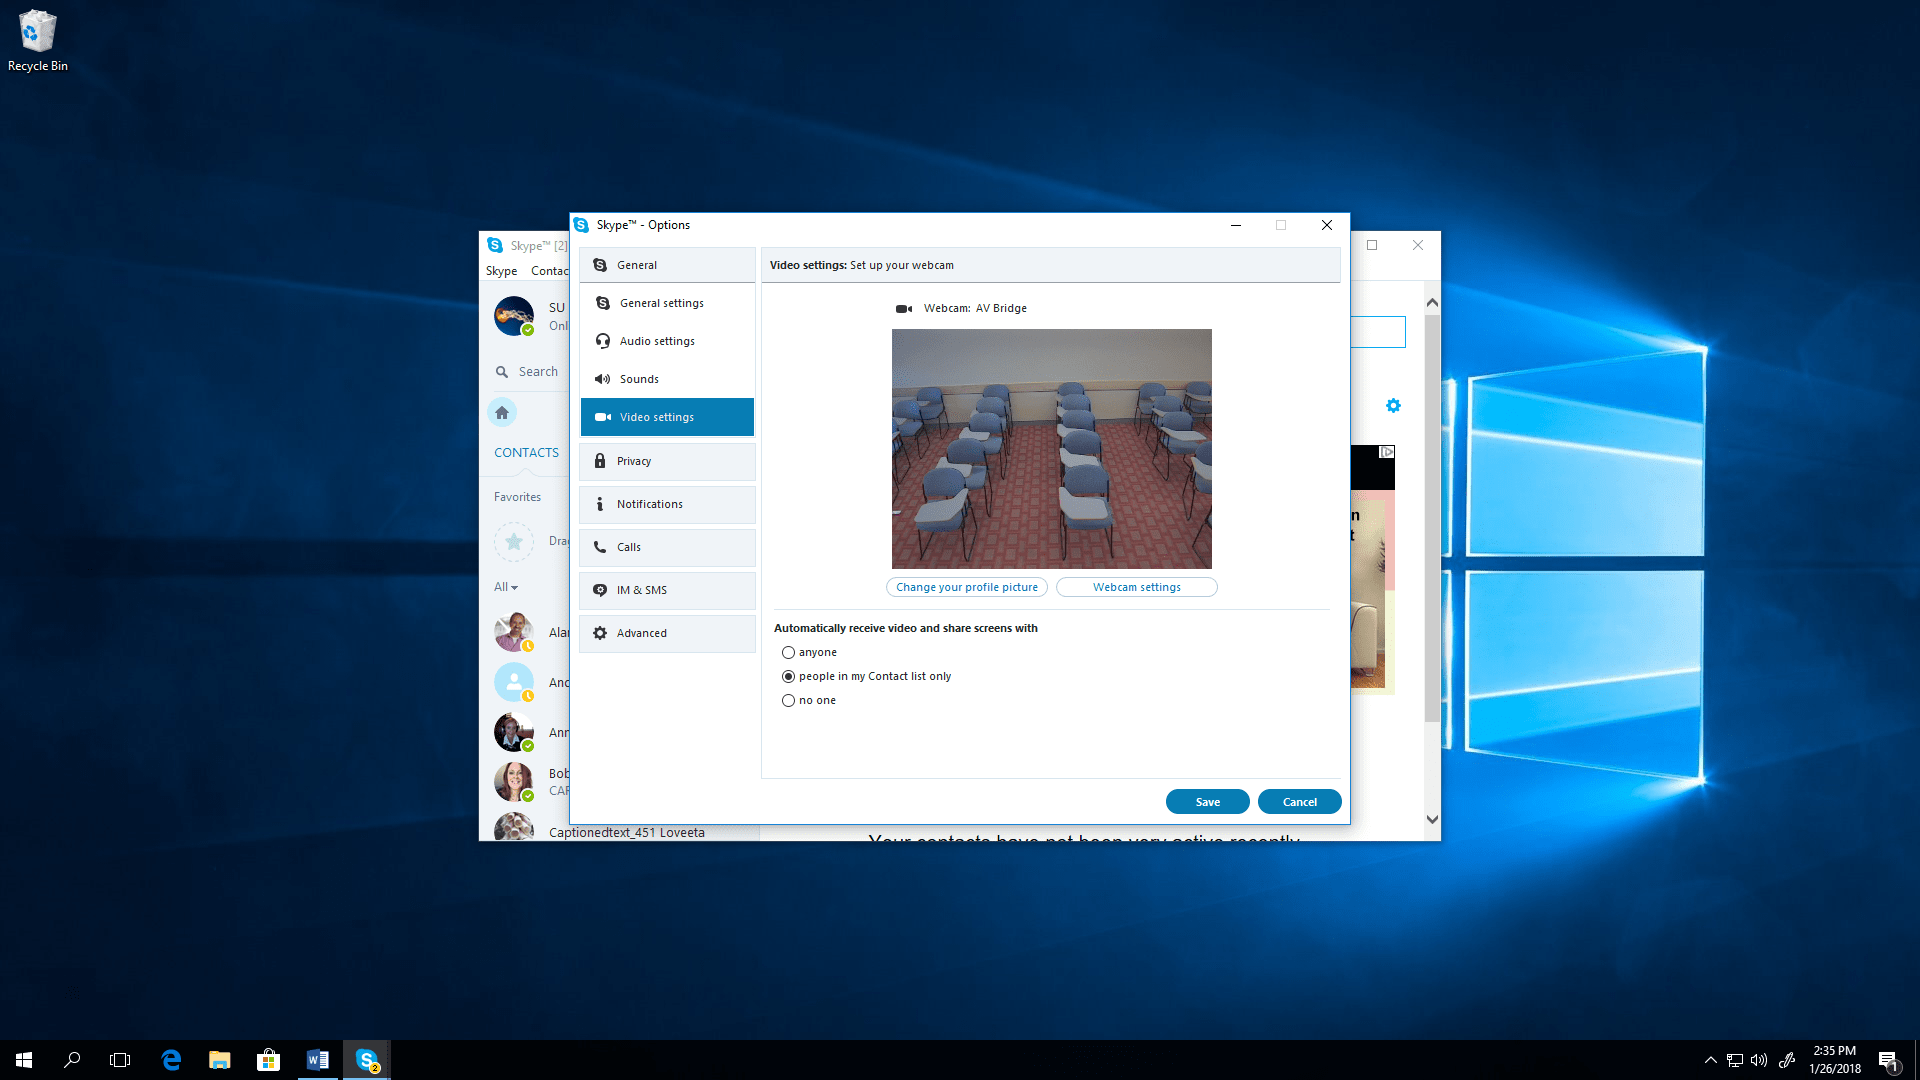 Figure 4.1_Windows Computer_Skype Options